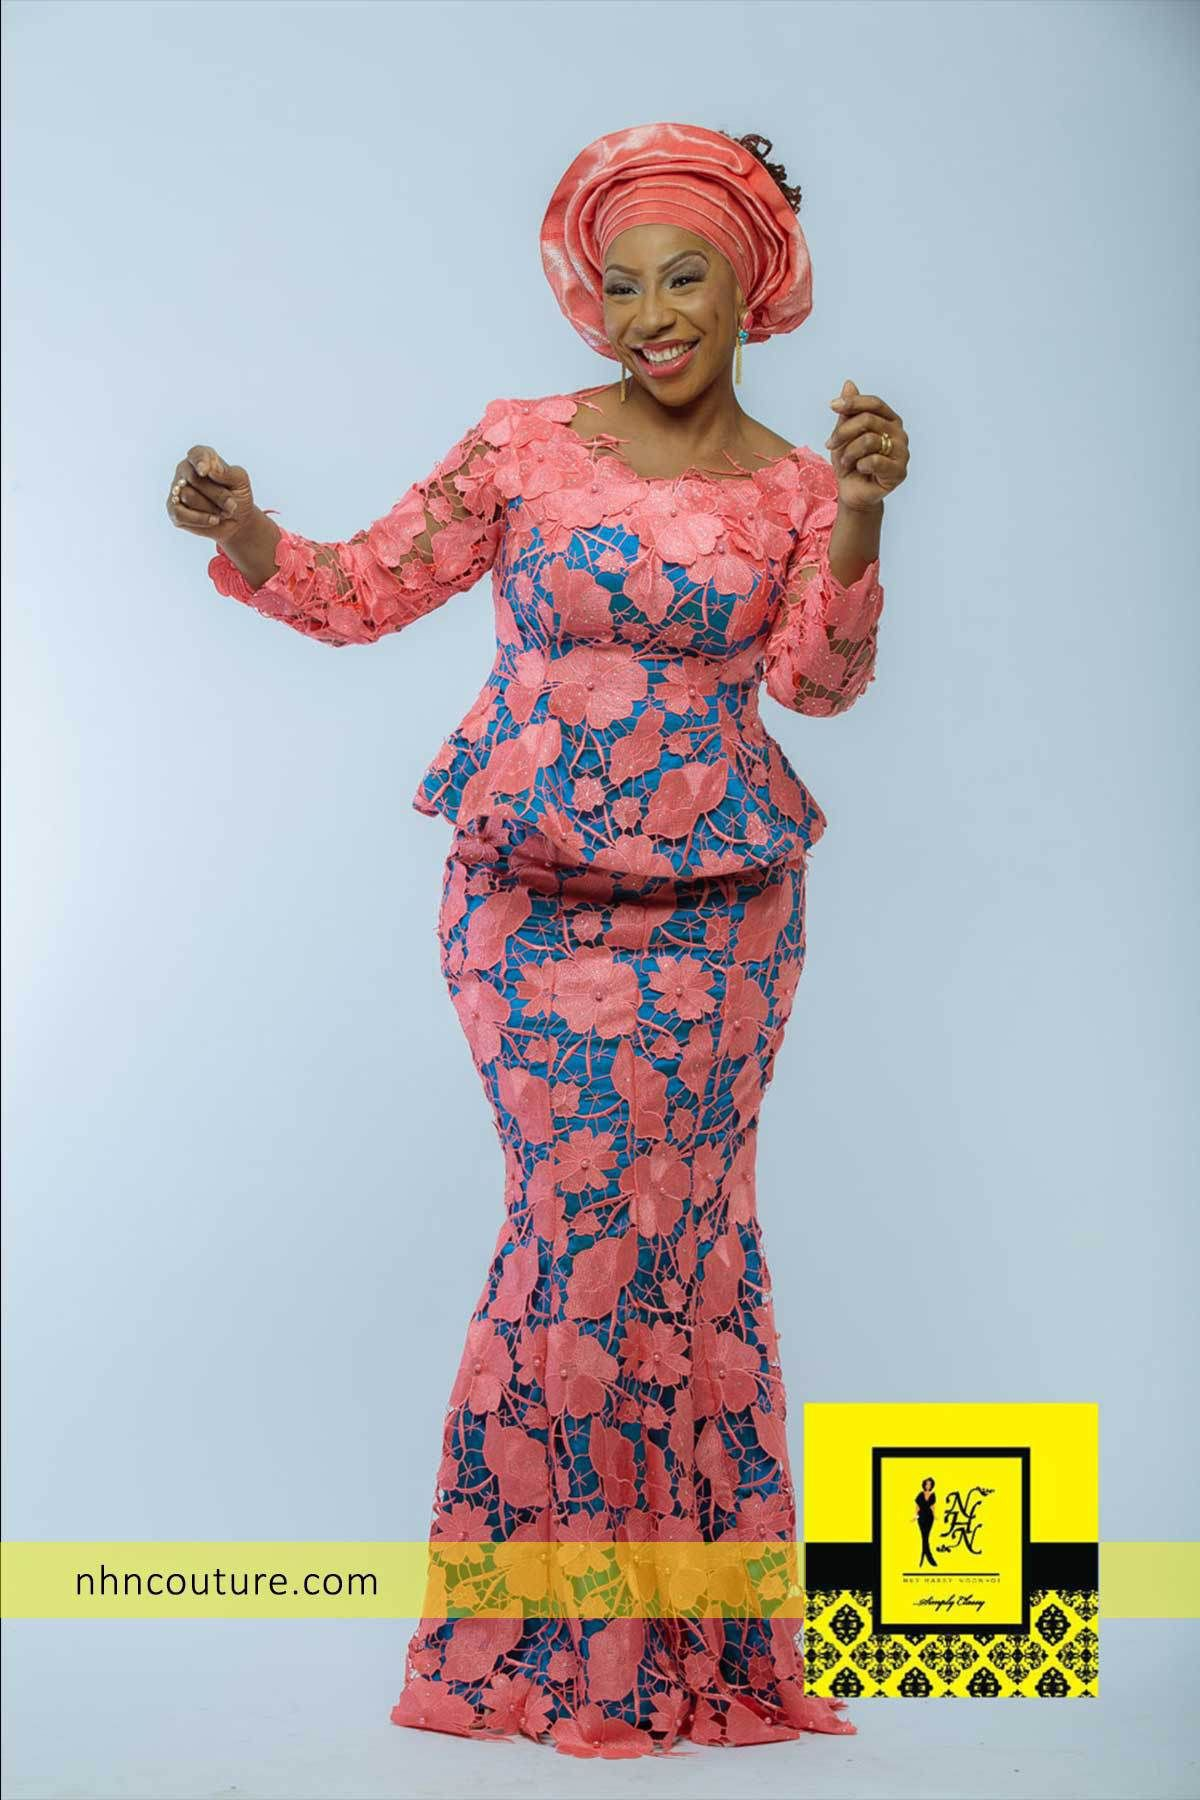 Nhn couture lace styles, Aso ebi